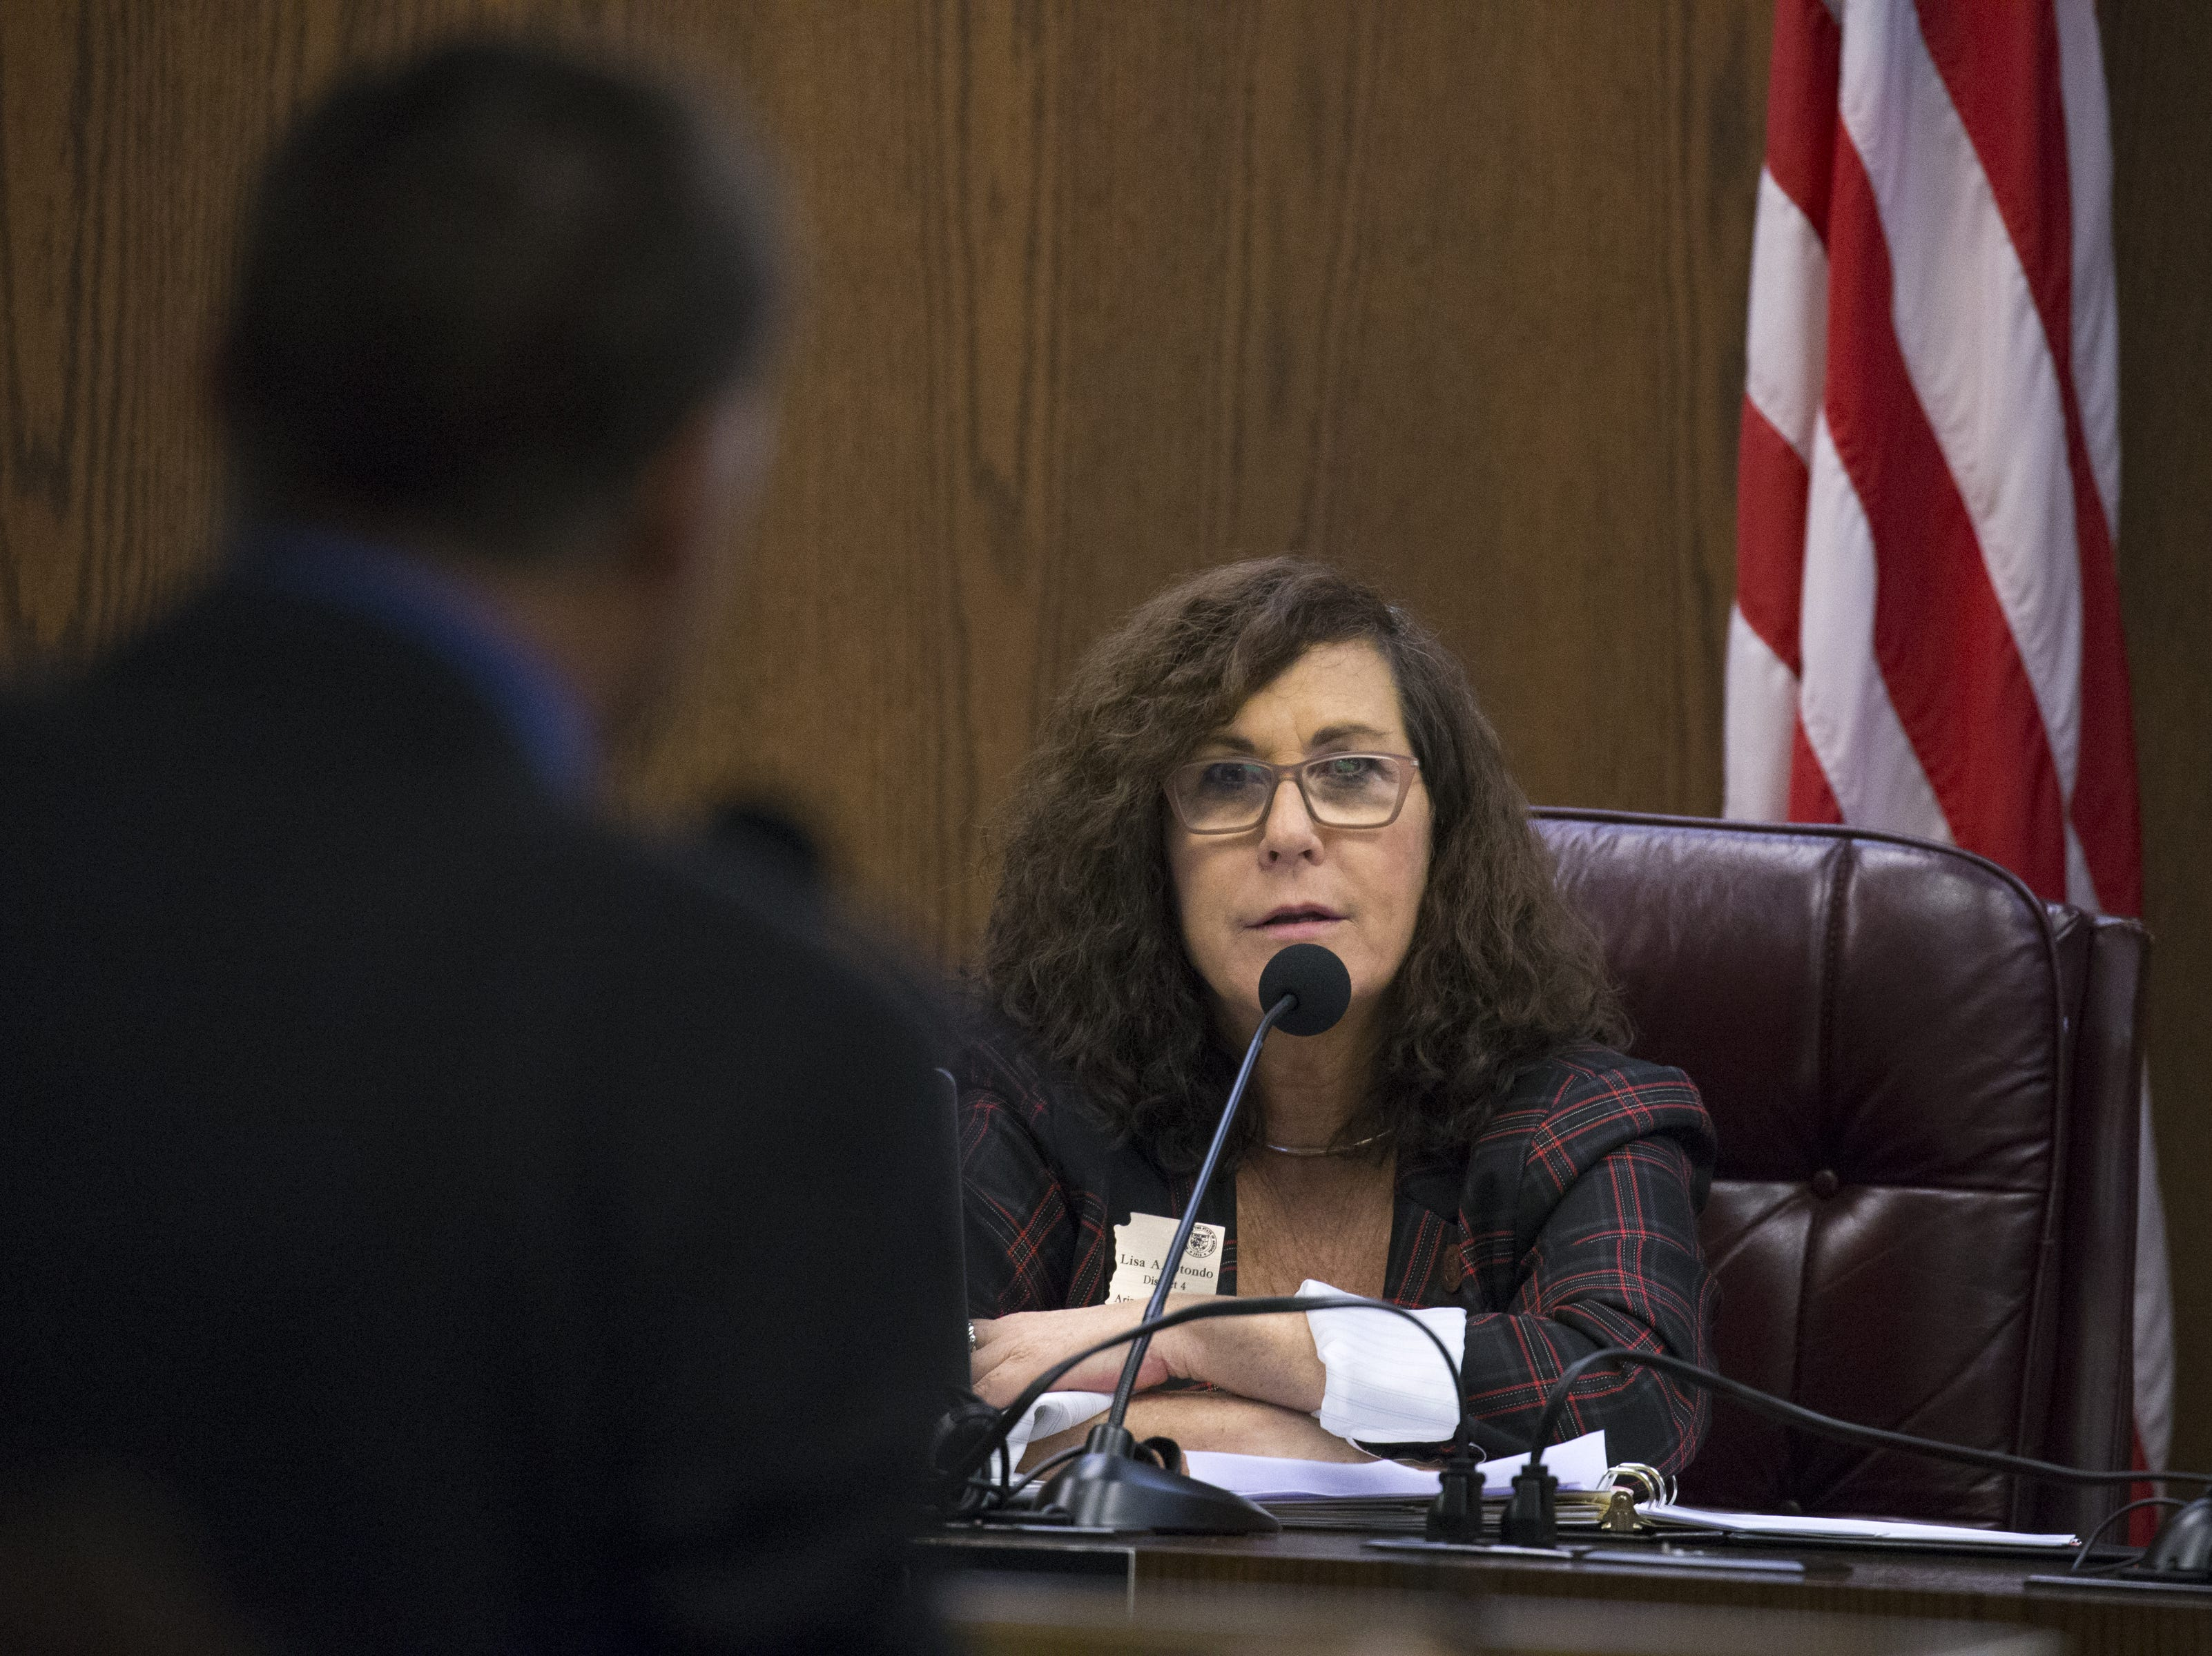 Sen. Lisa Otondo speaks during a hearing on SB 1227, Jan. 30, 2019, at the Arizona Senate Water and Agriculture Committee at the Arizona Capitol.